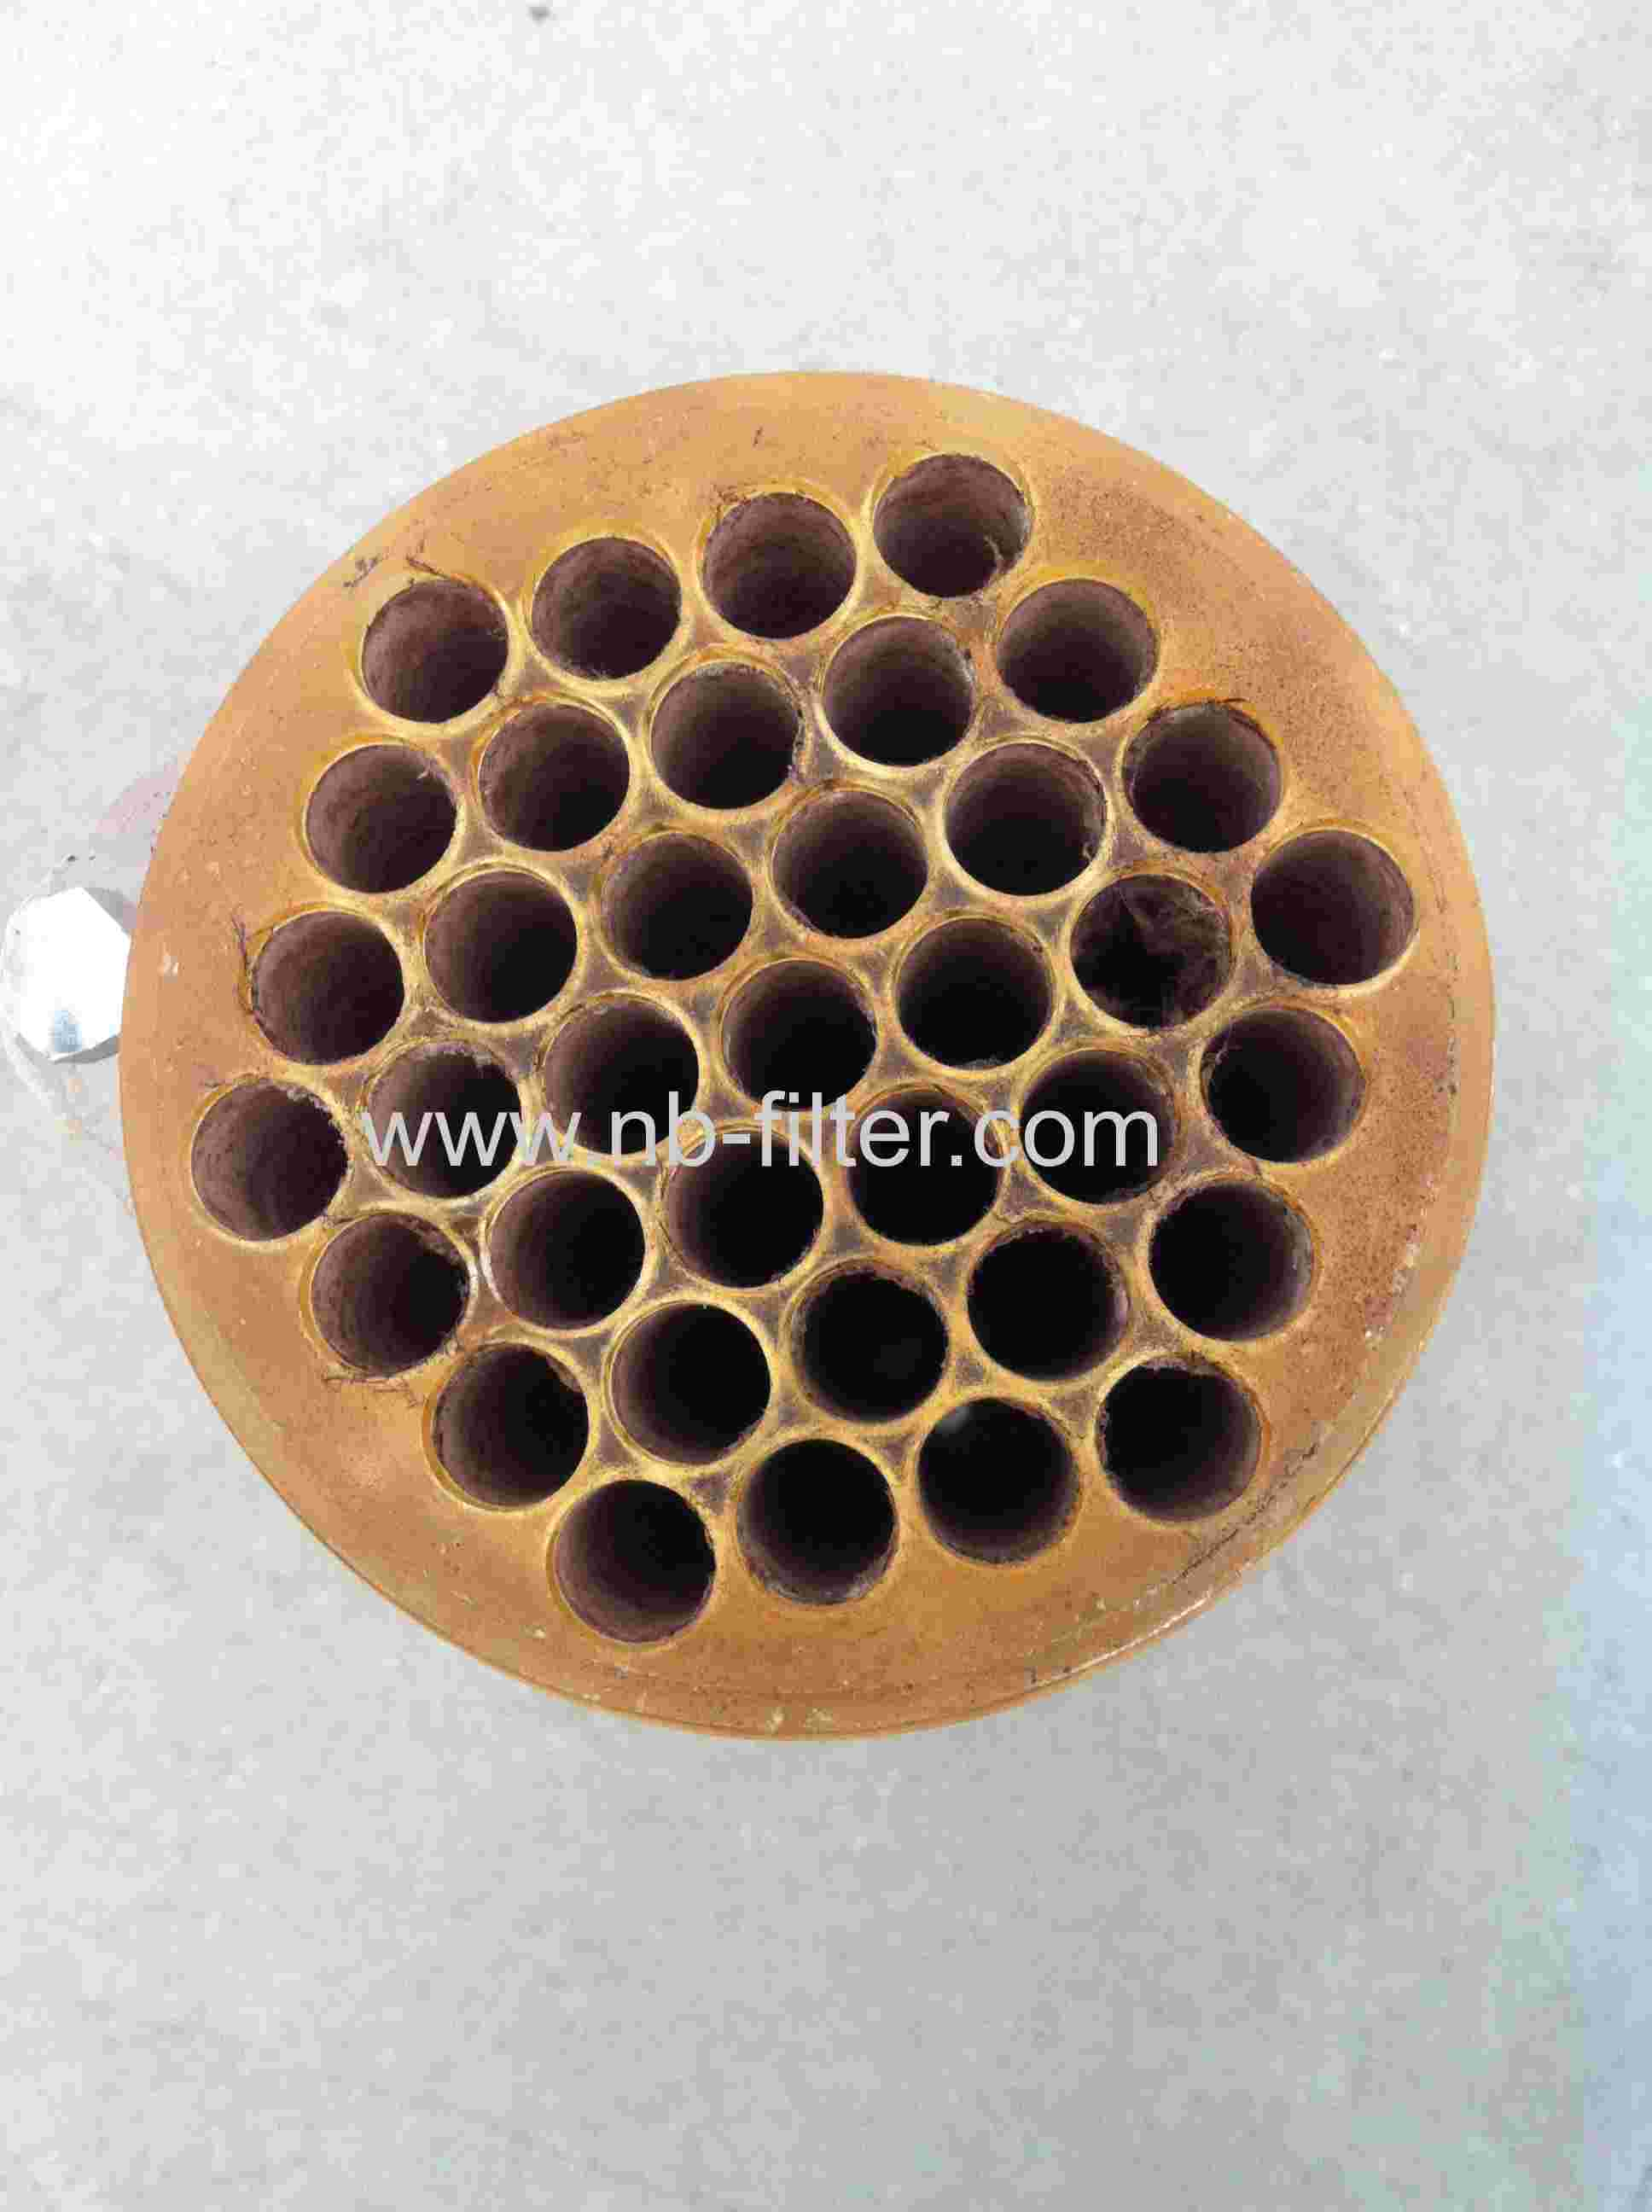 Tubular Ultra-filtration membrane